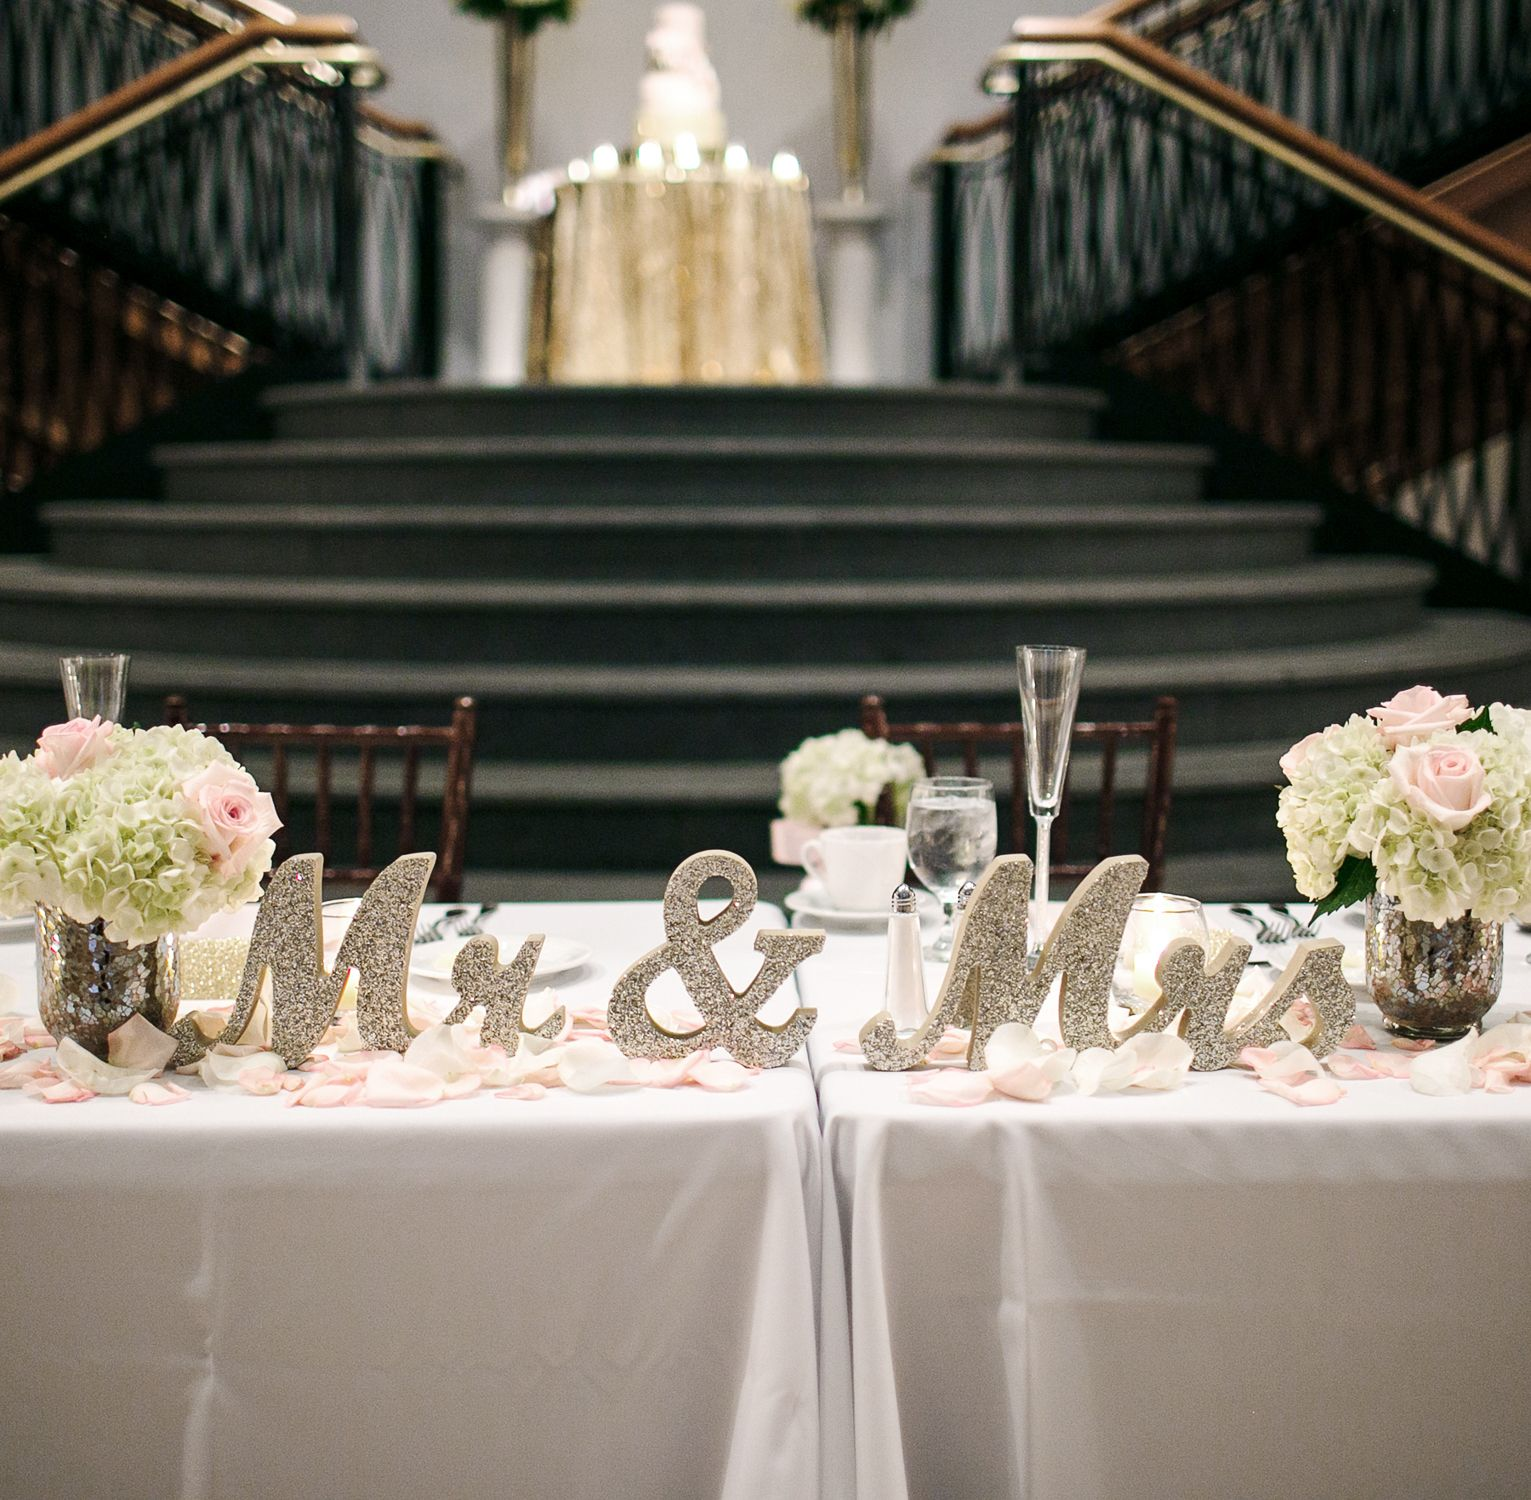 Classy sweetheart table ideas for the bride and groom mr for Bridal decorations